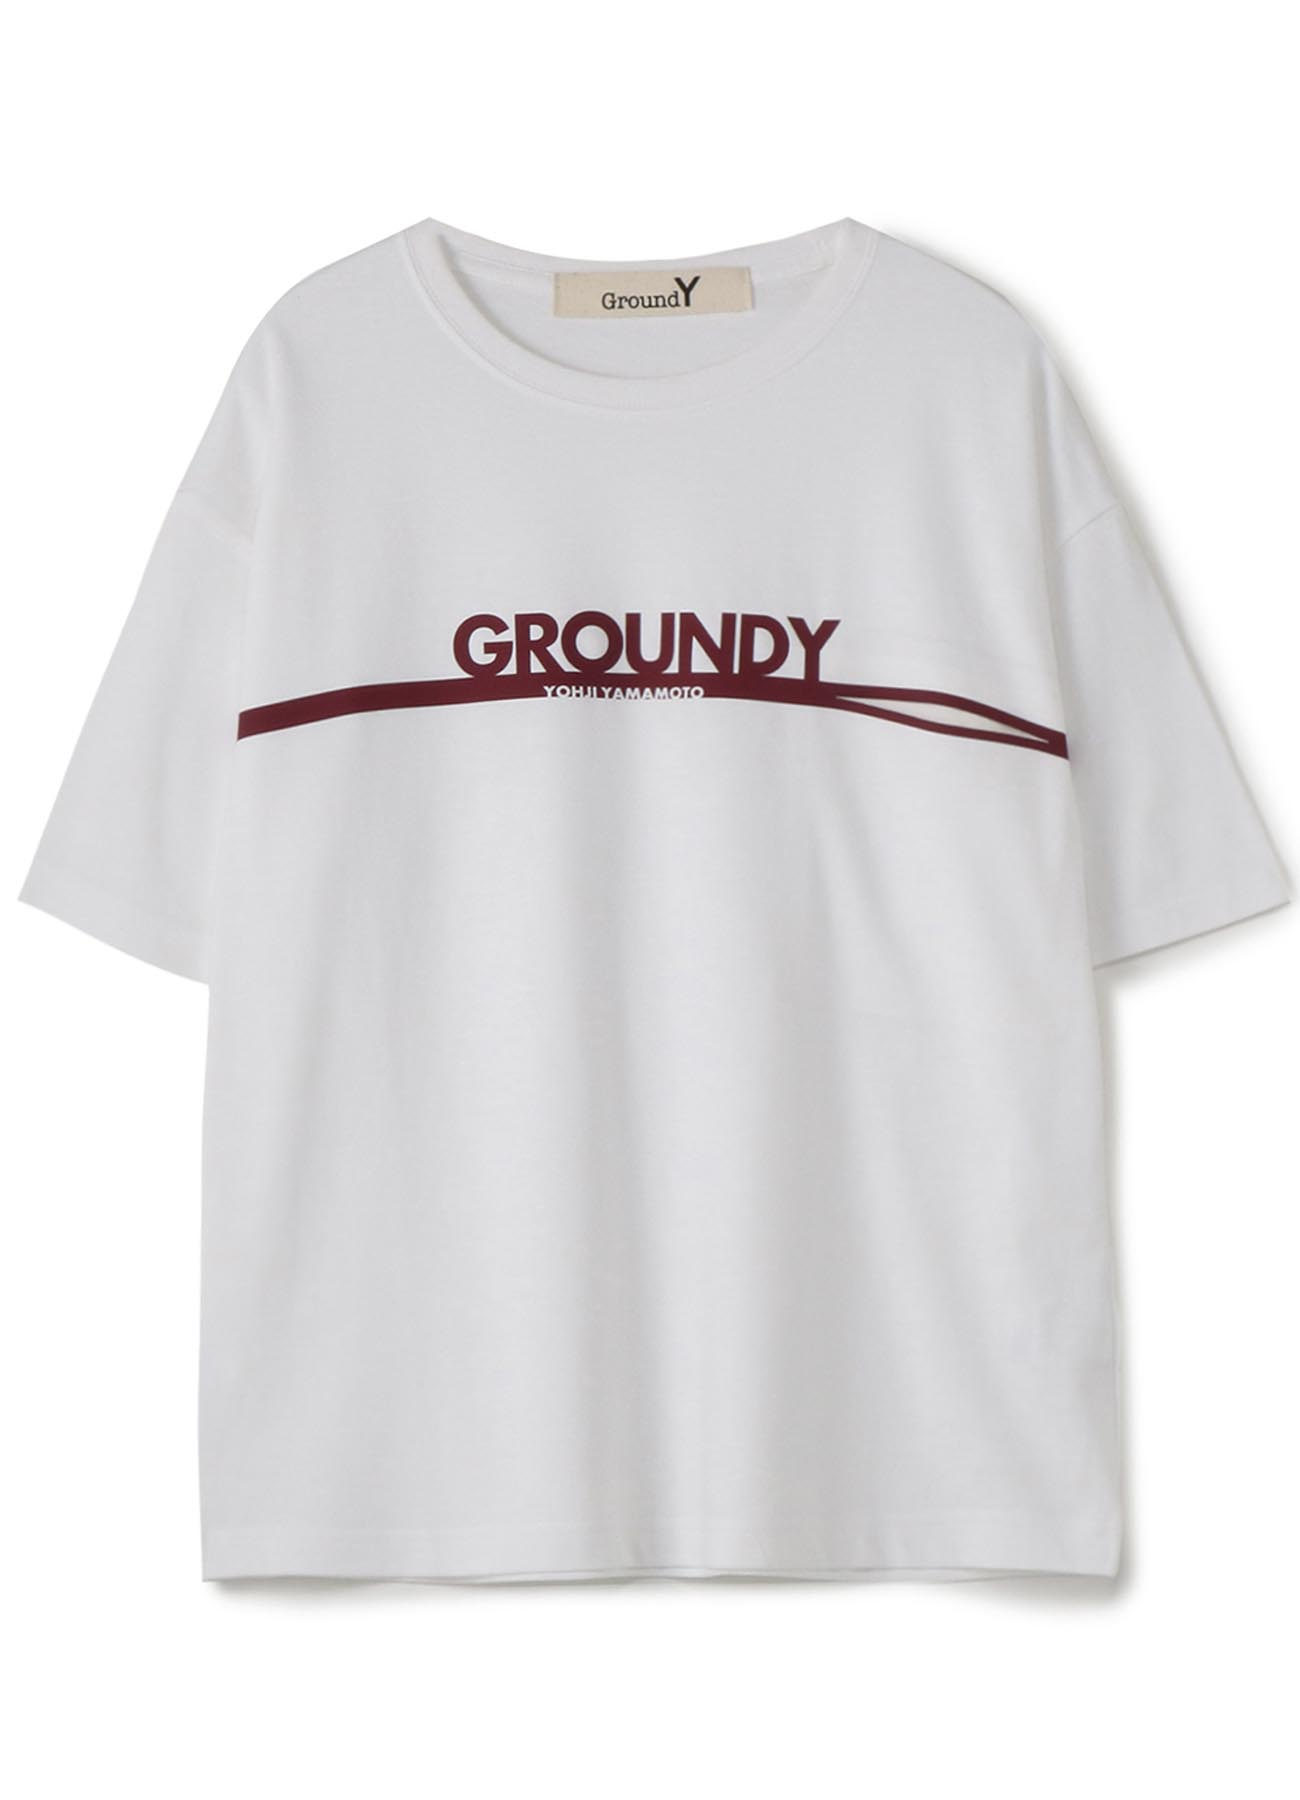 Ground Y&YOHJI YAMAMAOTO Logo Pocket Tshirt